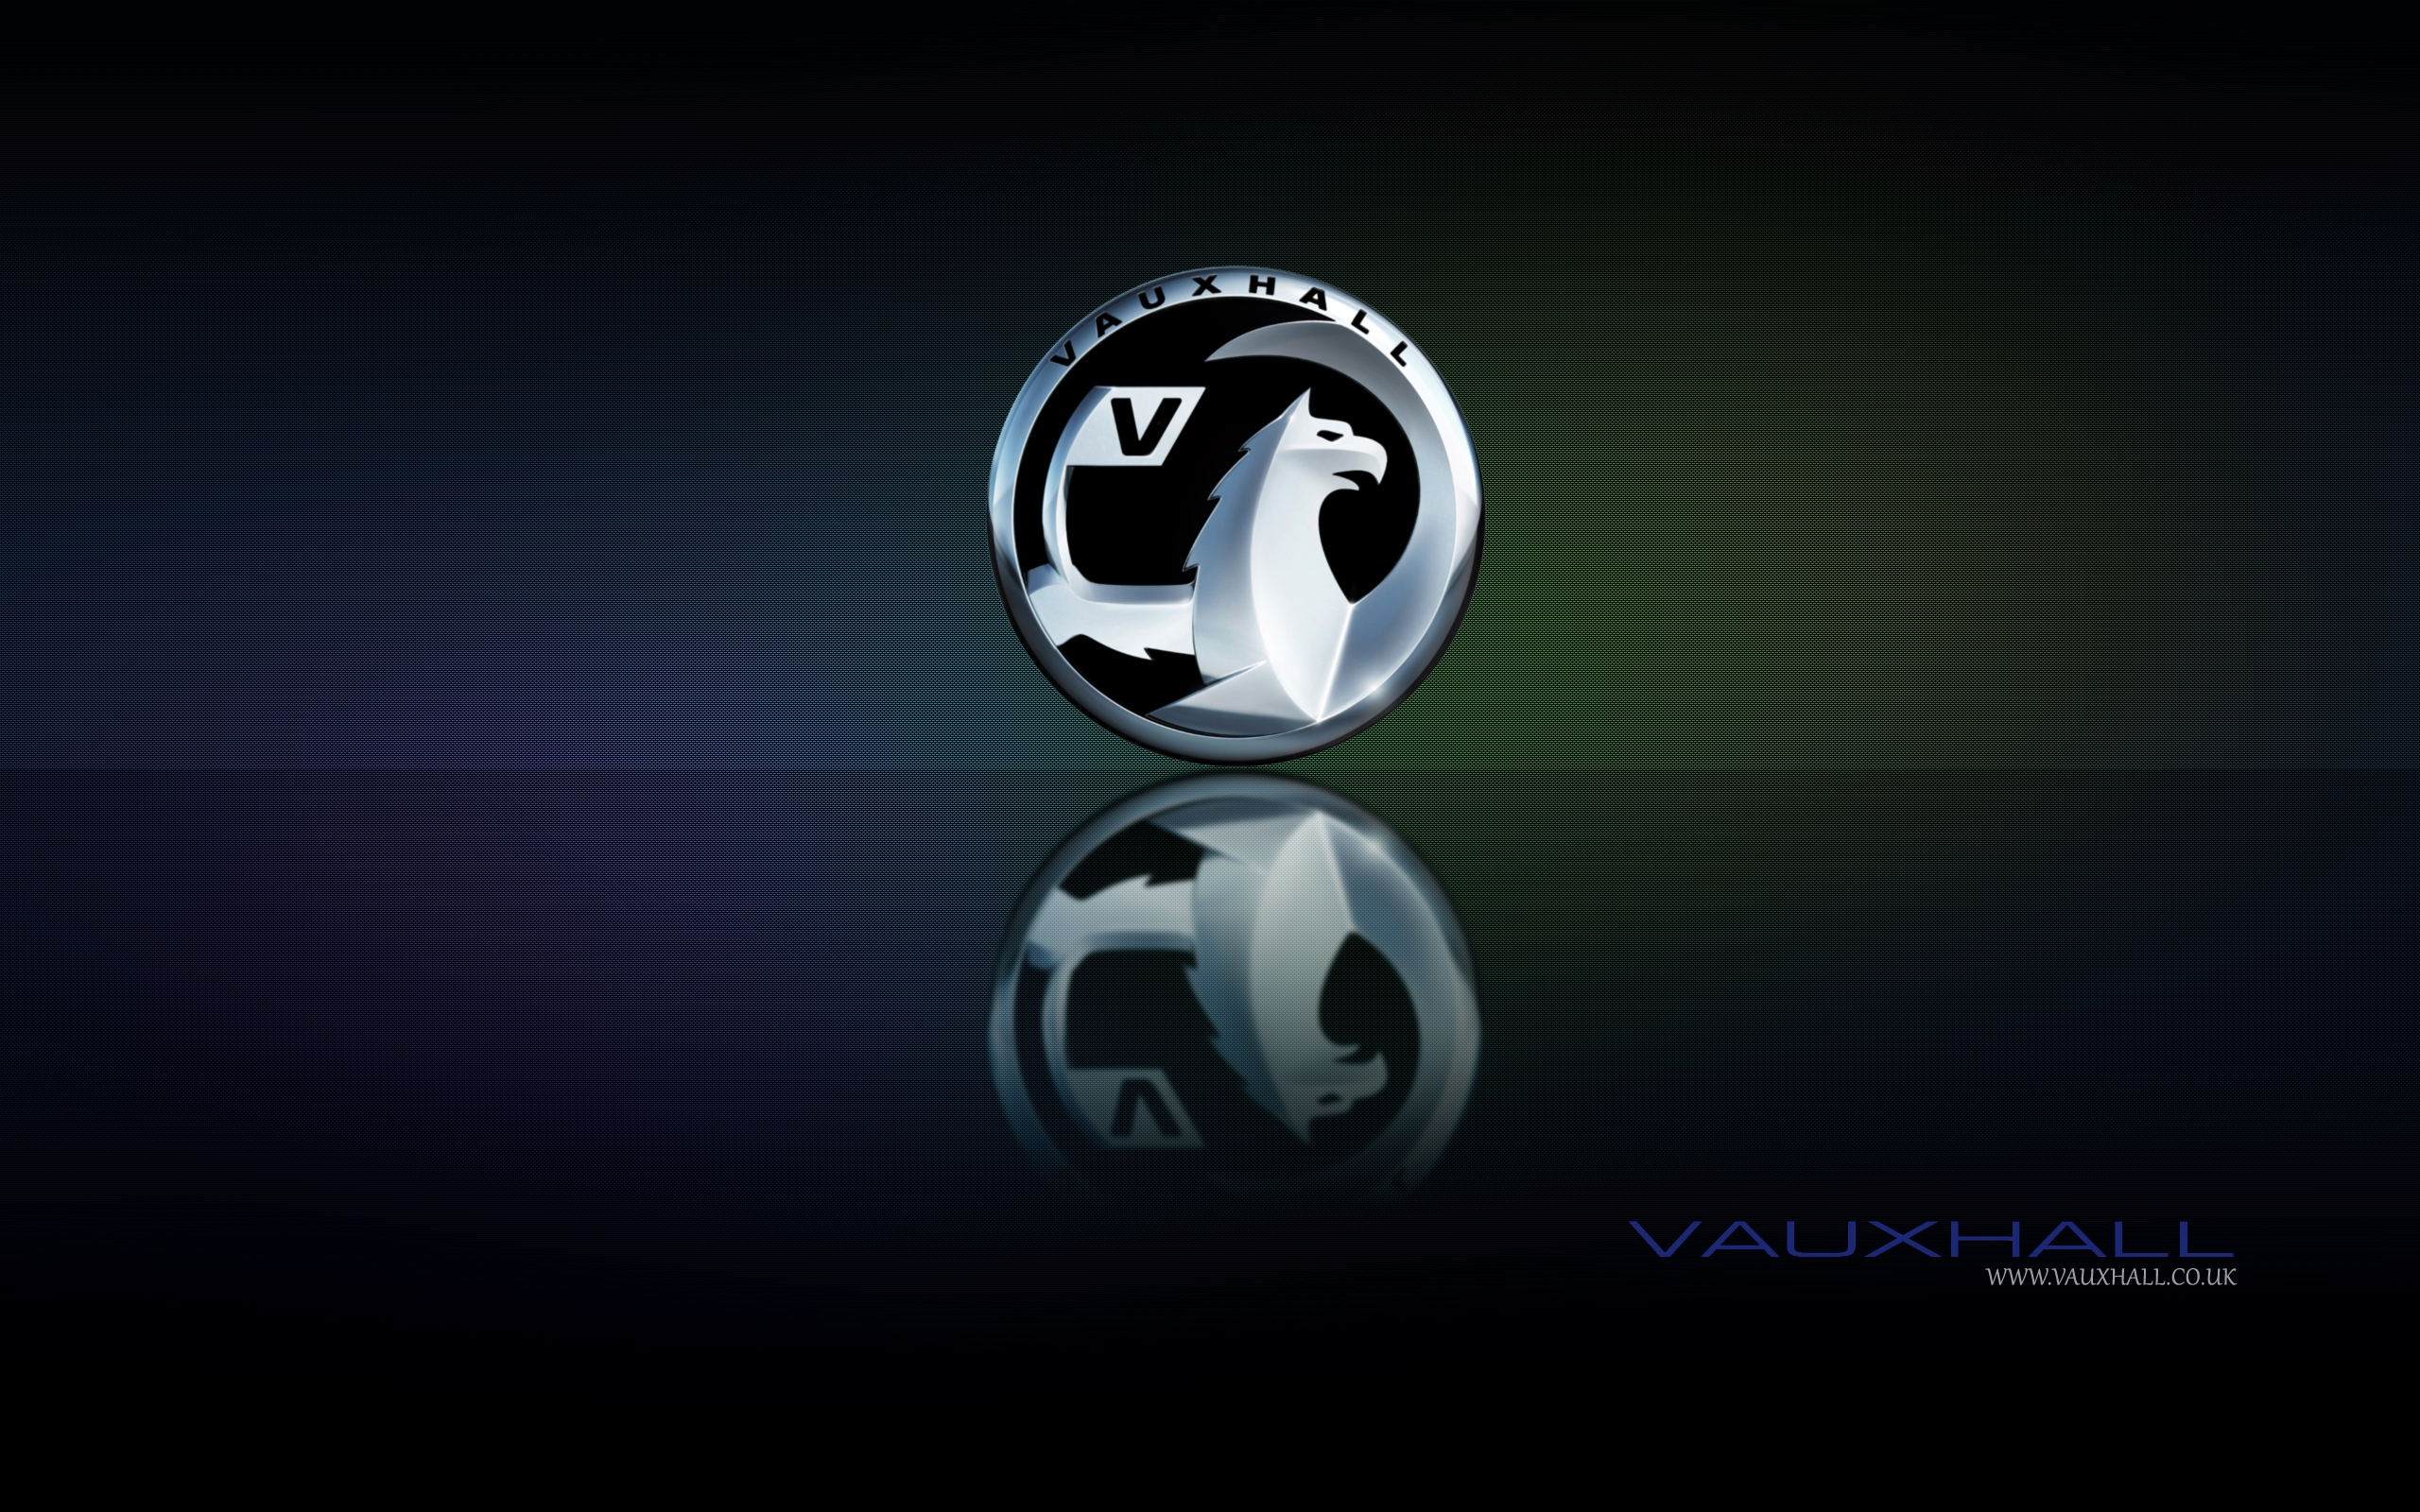 2560x1600 - Vauxhall Wallpapers 1